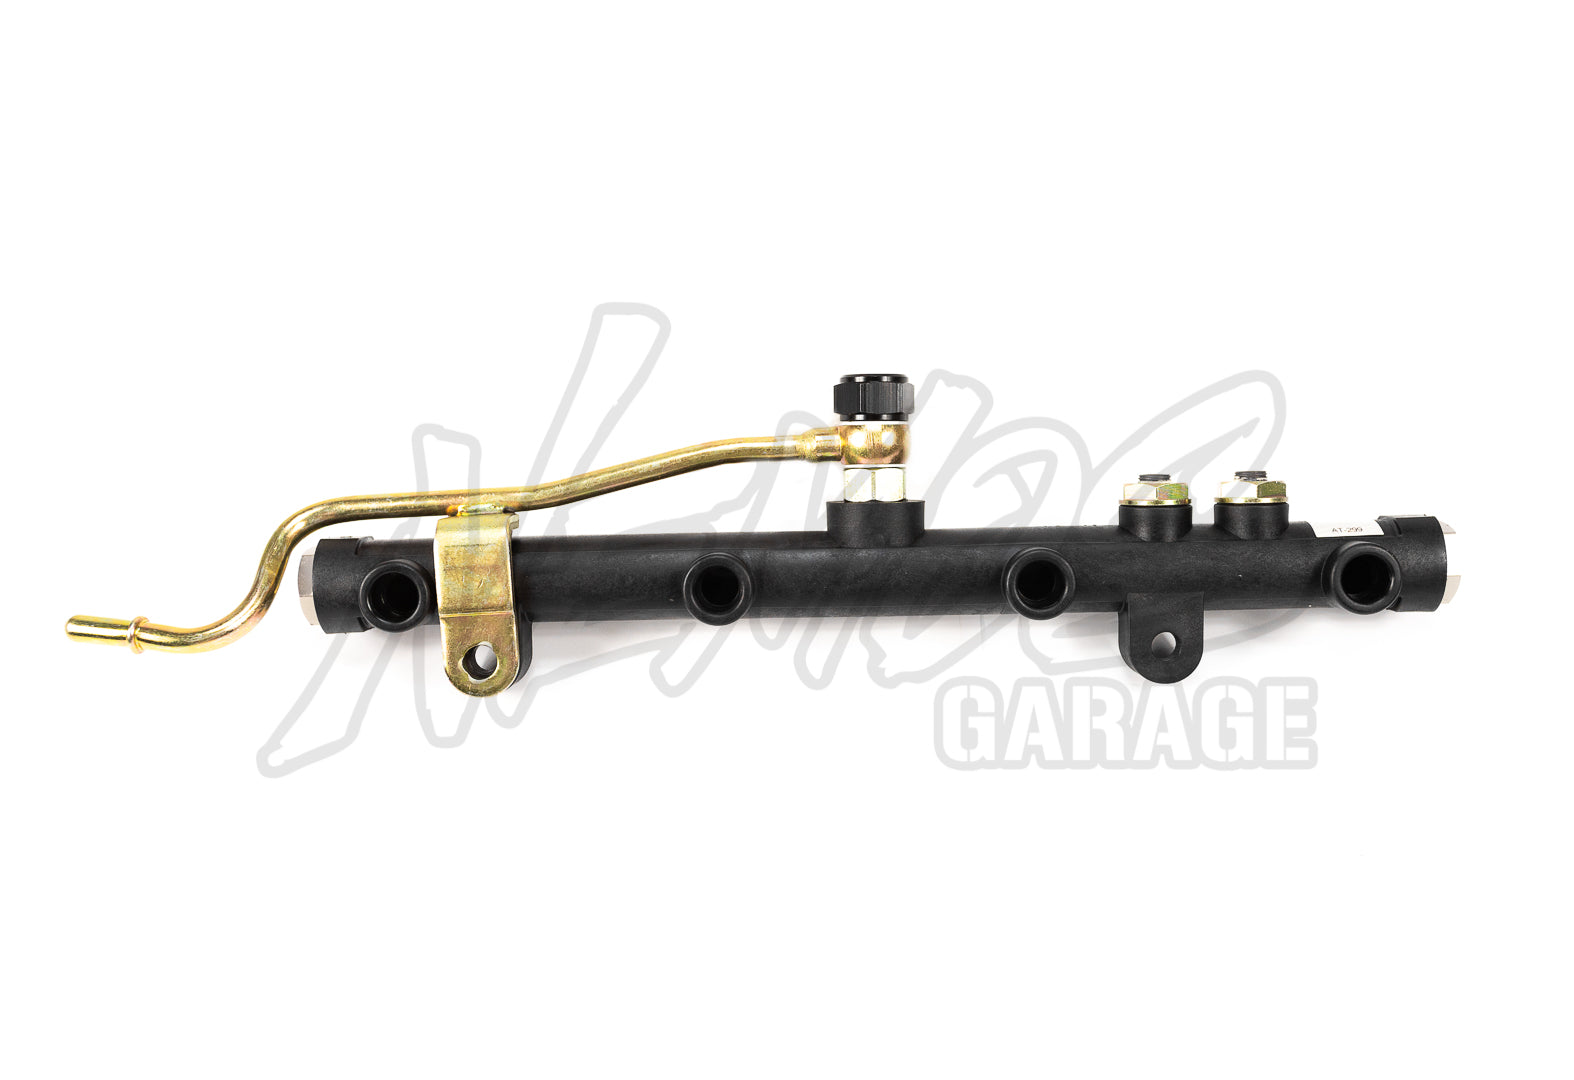 SKUNK2 K-series K20//K24 Composite Fuel Rail Civic//Integra//RSX